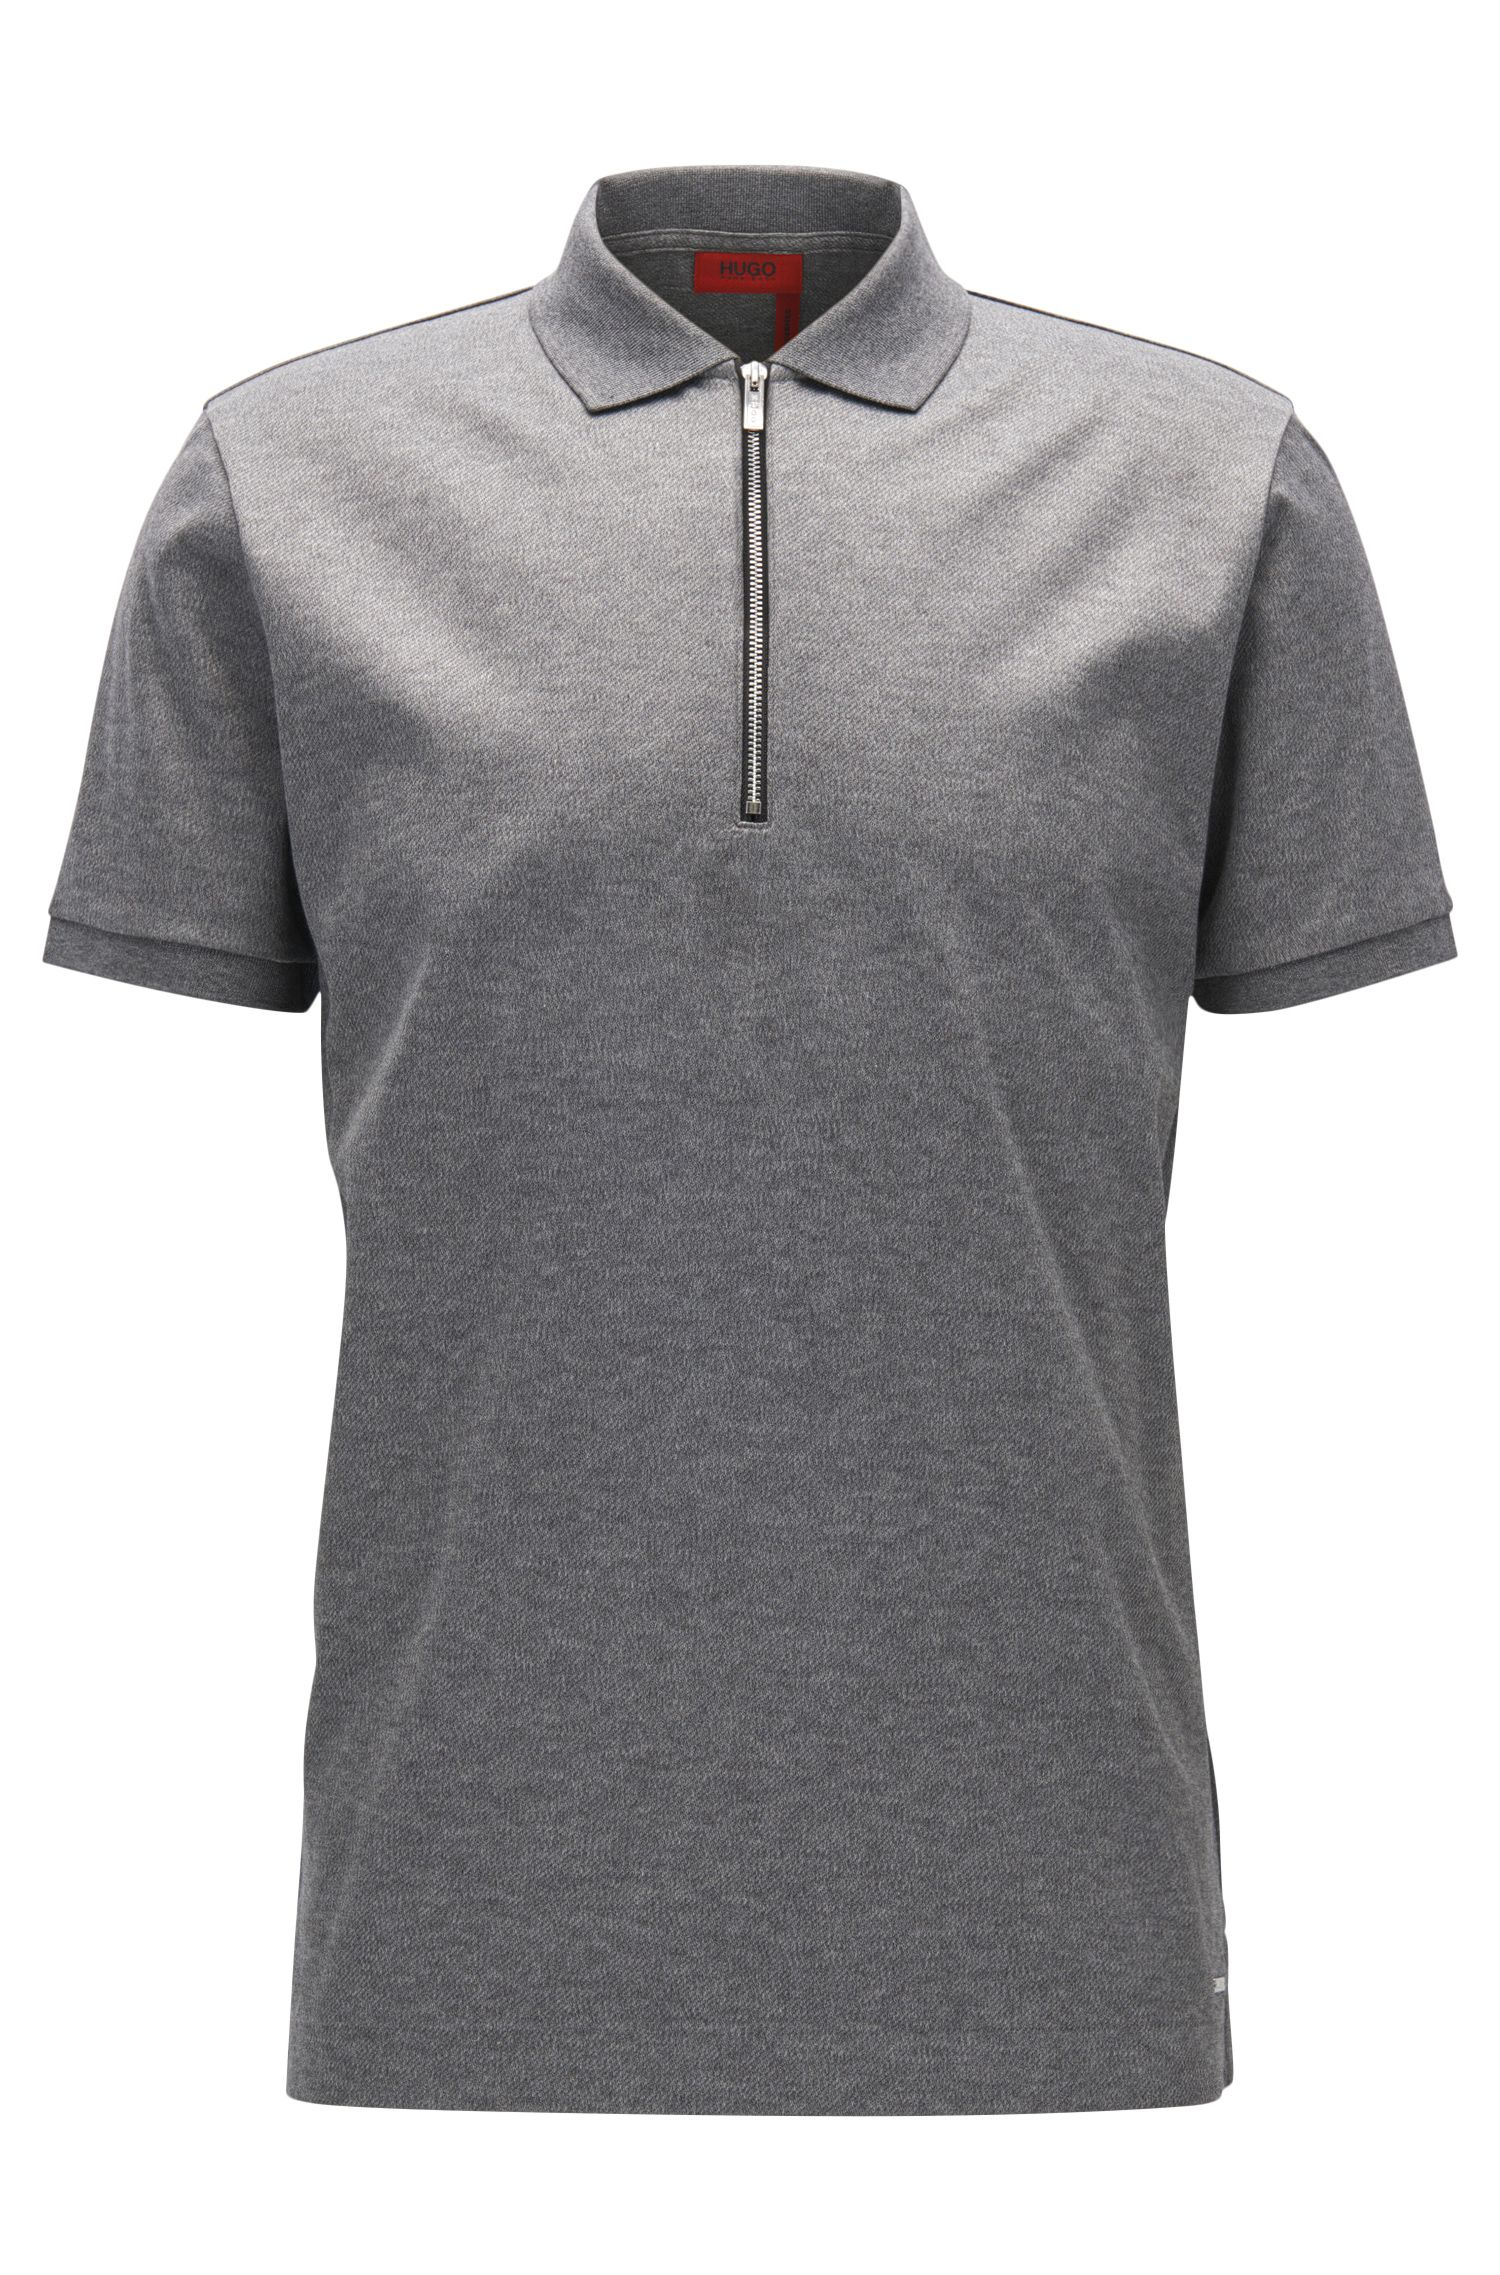 Mercerized Cotton Twill Polo Shirt, Regular Fit | Digato